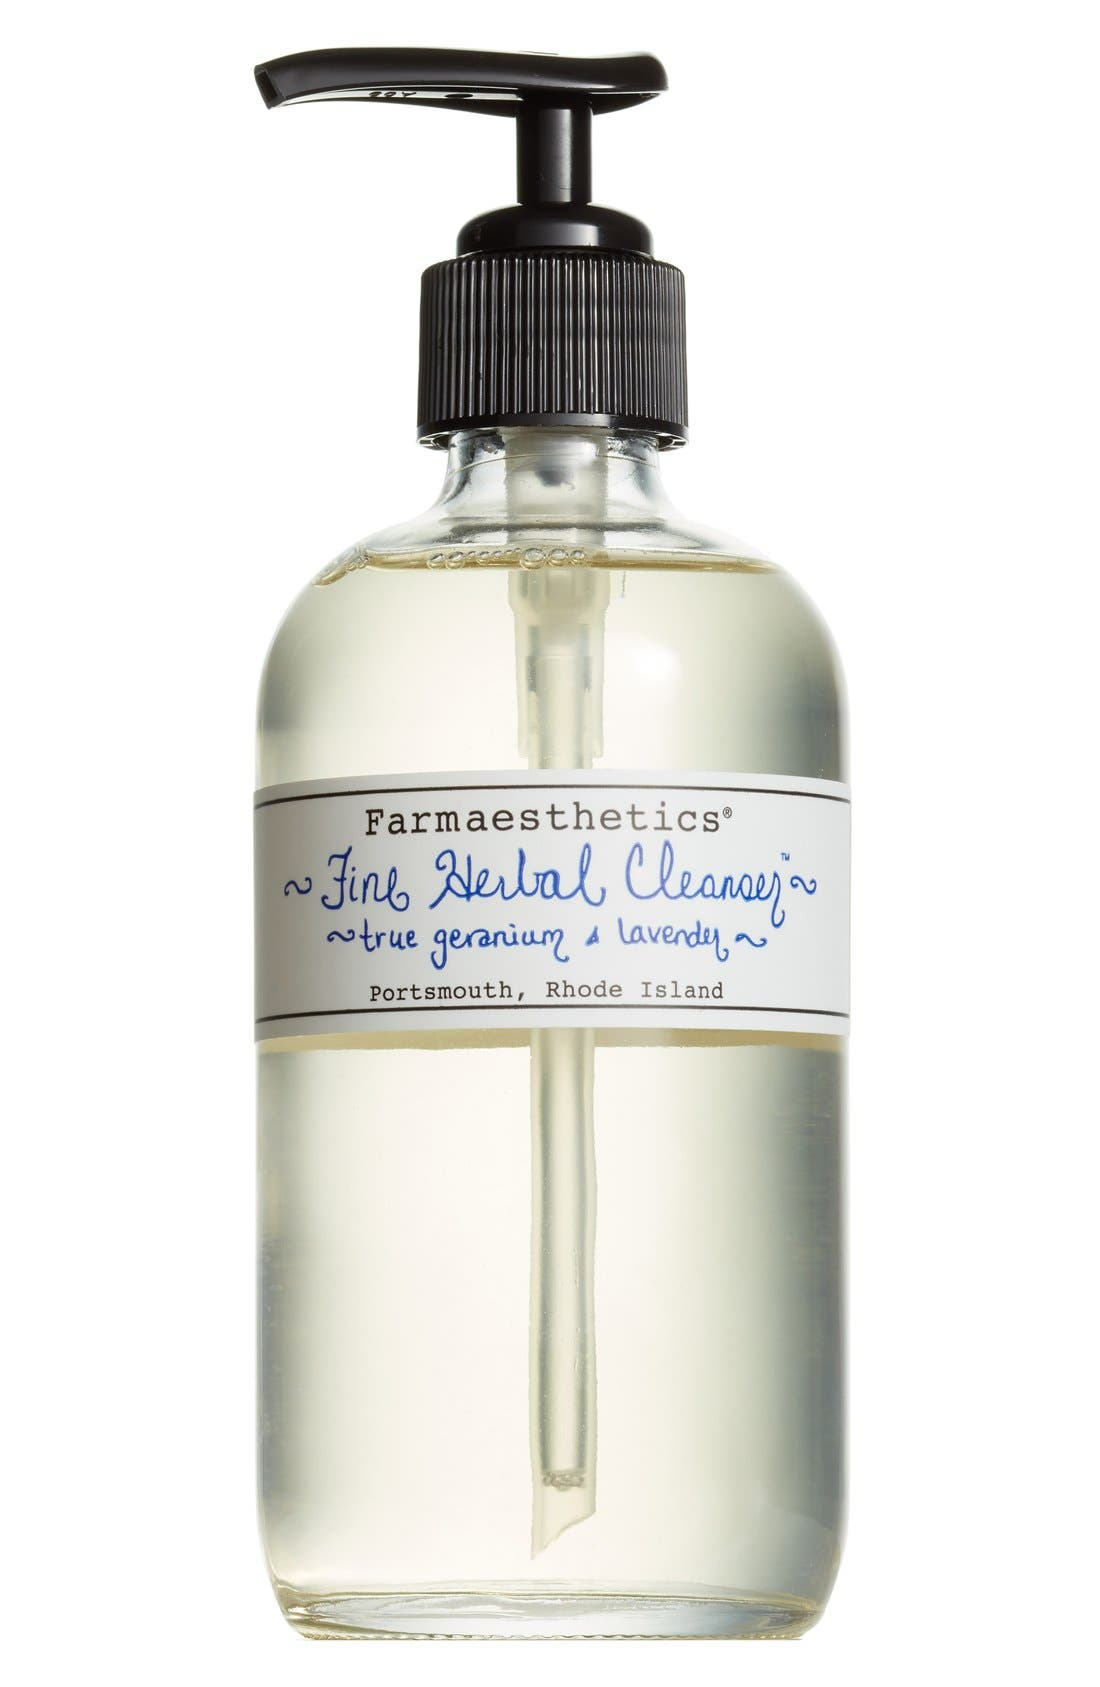 Farmaesthetics Fine Herbal Cleanser